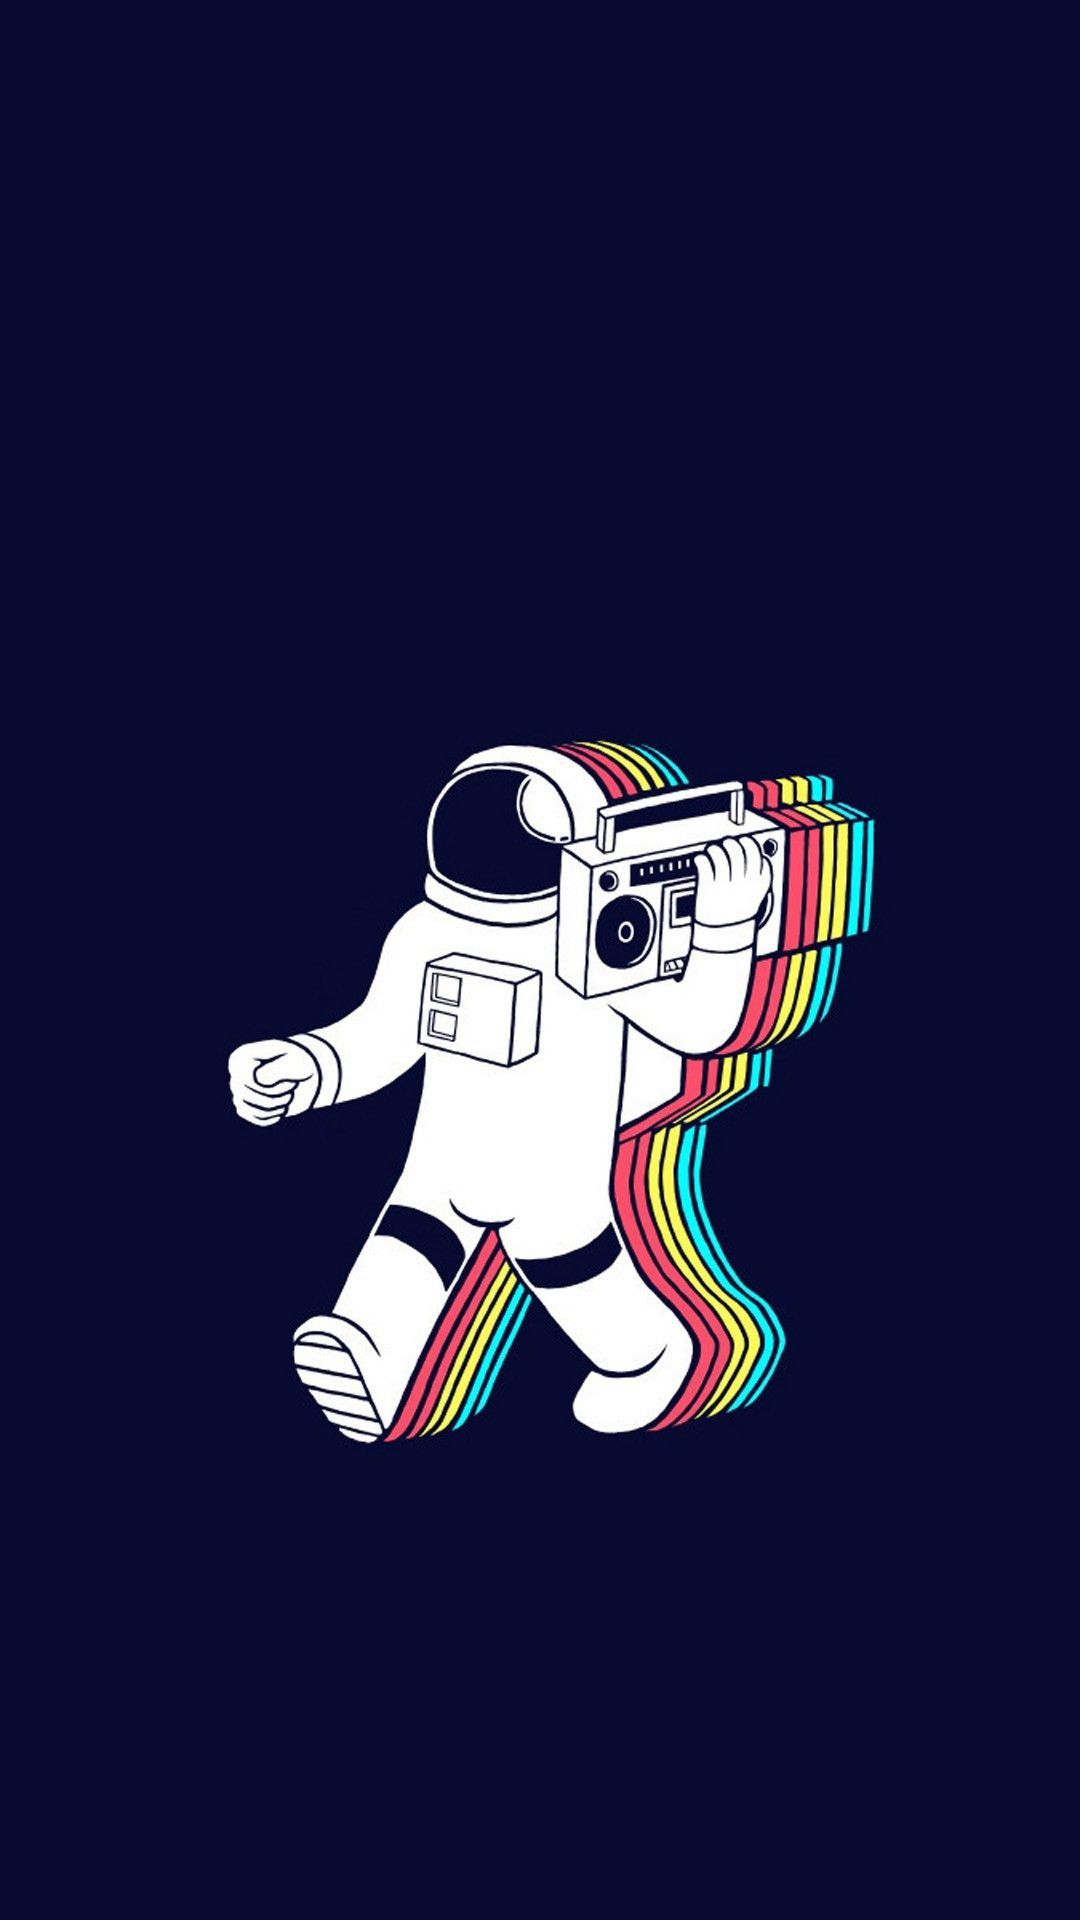 1080x1920 Cartoon Astronaut Music Iphone Wallpaper